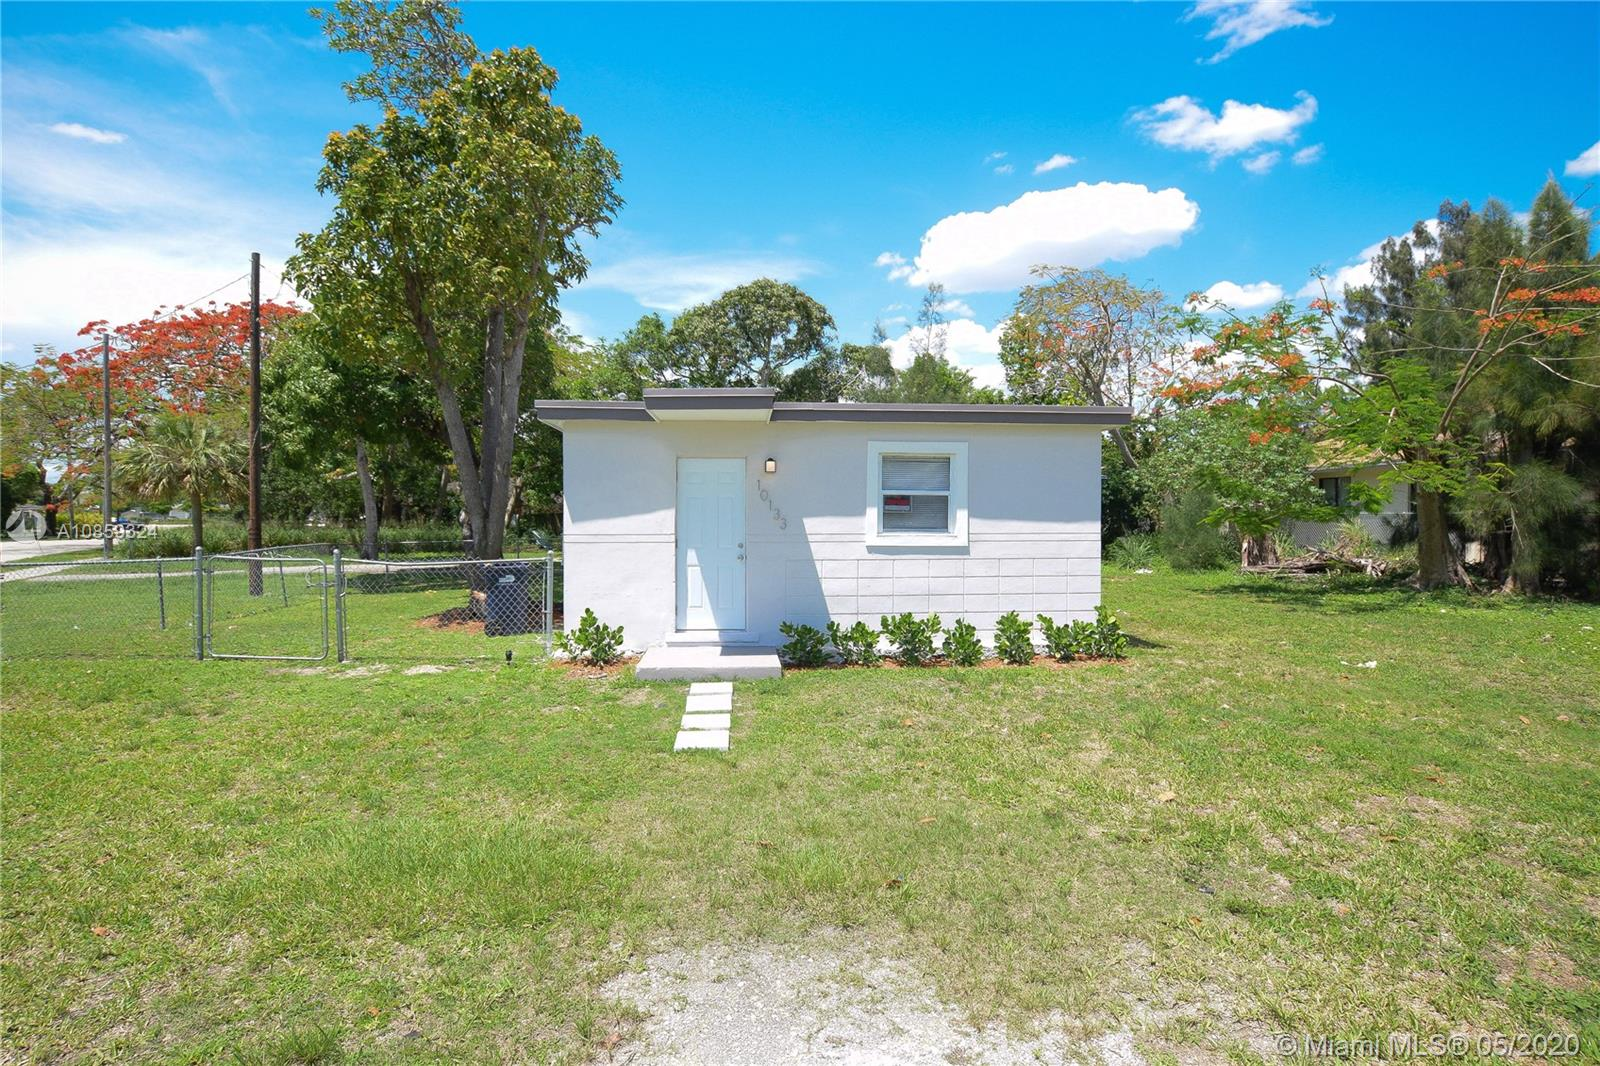 10133 W Jessamine St, Miami, Florida 33157, 2 Bedrooms Bedrooms, ,1 BathroomBathrooms,Residential,For Sale,10133 W Jessamine St,A10859324